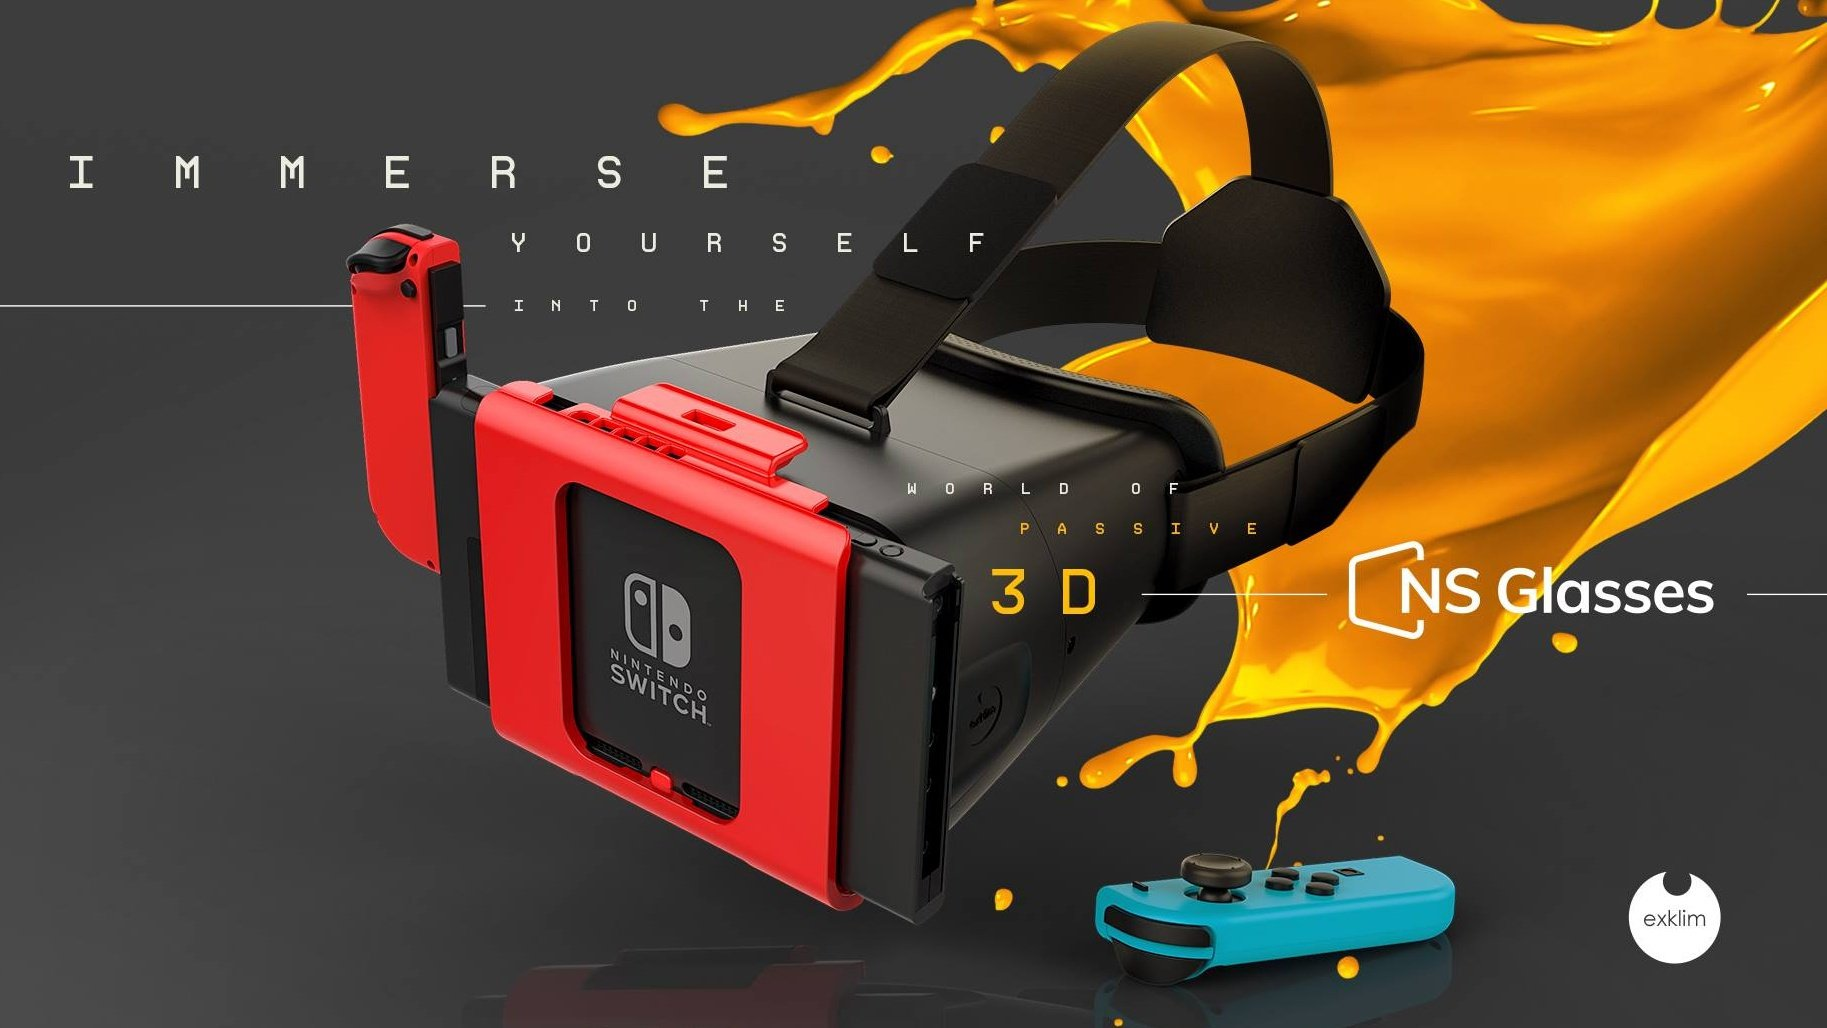 Nintendo Switch Is About To Get Its First VR-Style Headset, But